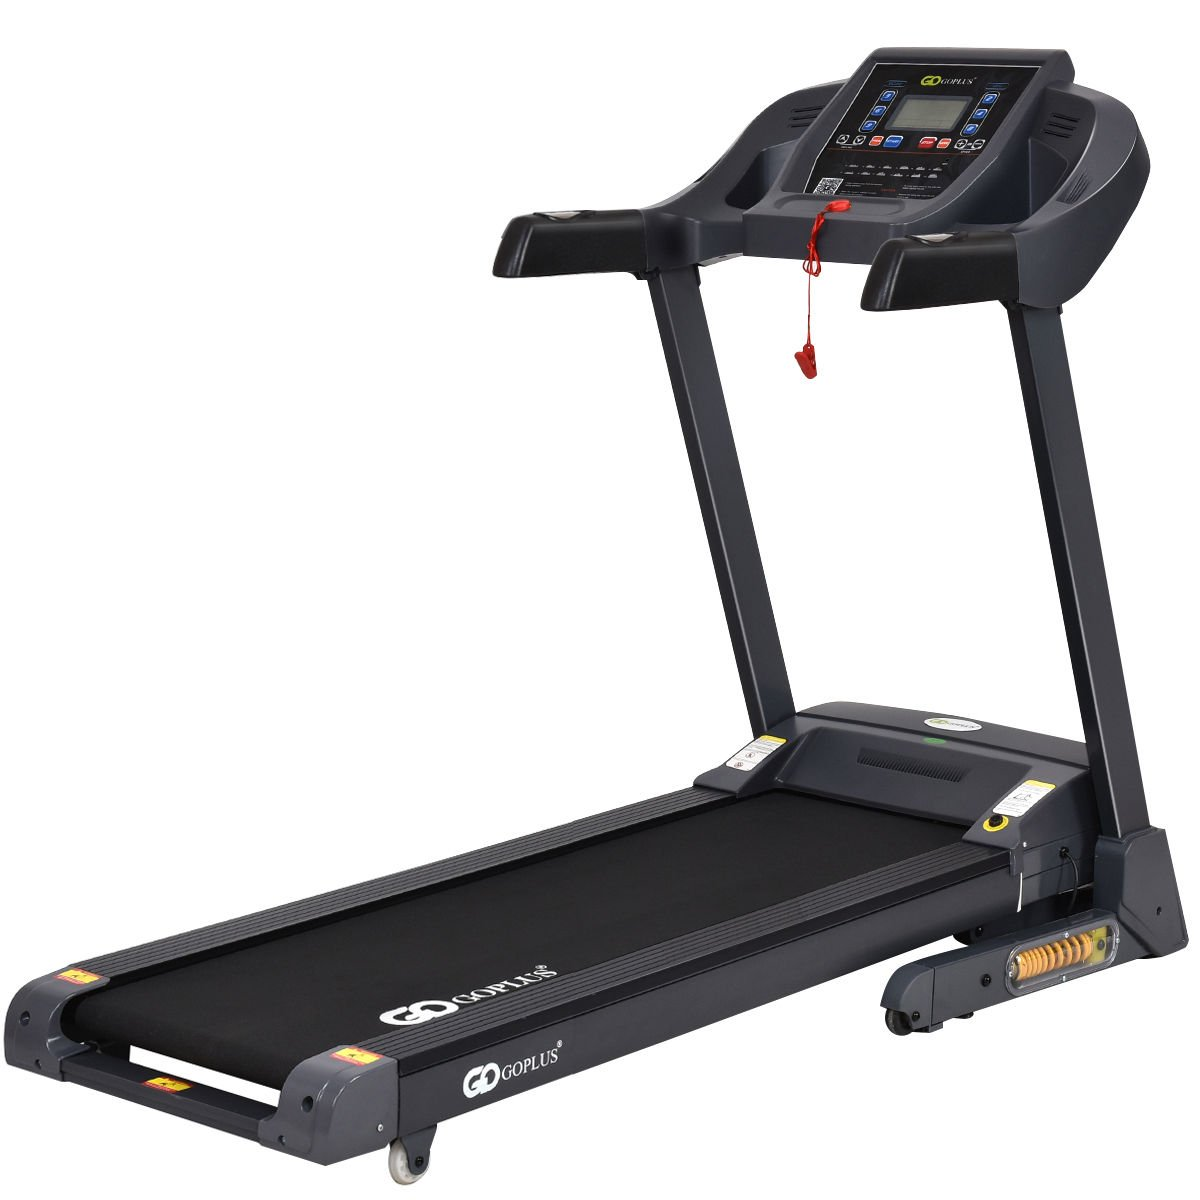 Goplus 2.5HP Folding Treadmill Electric Support Motorized Power Running Fitness Jogging Incline Machine W/APP Control & Shock-Absorption System (New Model) by Goplus (Image #1)